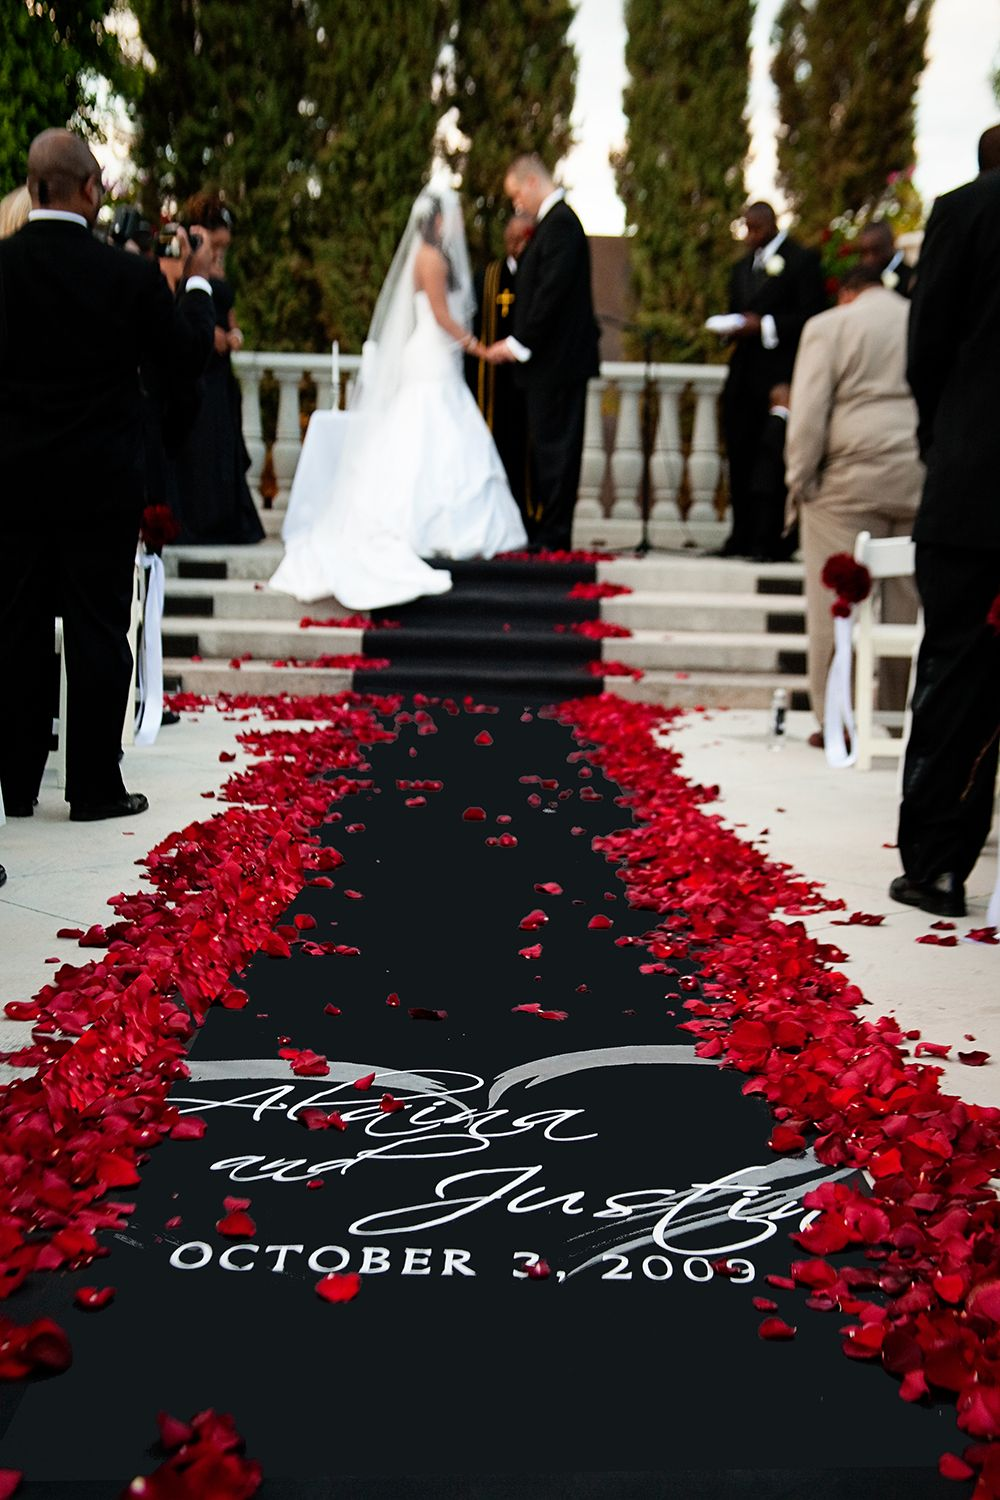 Black and red wedding ideas wedding ideas pinterest red black and red wedding ideas junglespirit Images